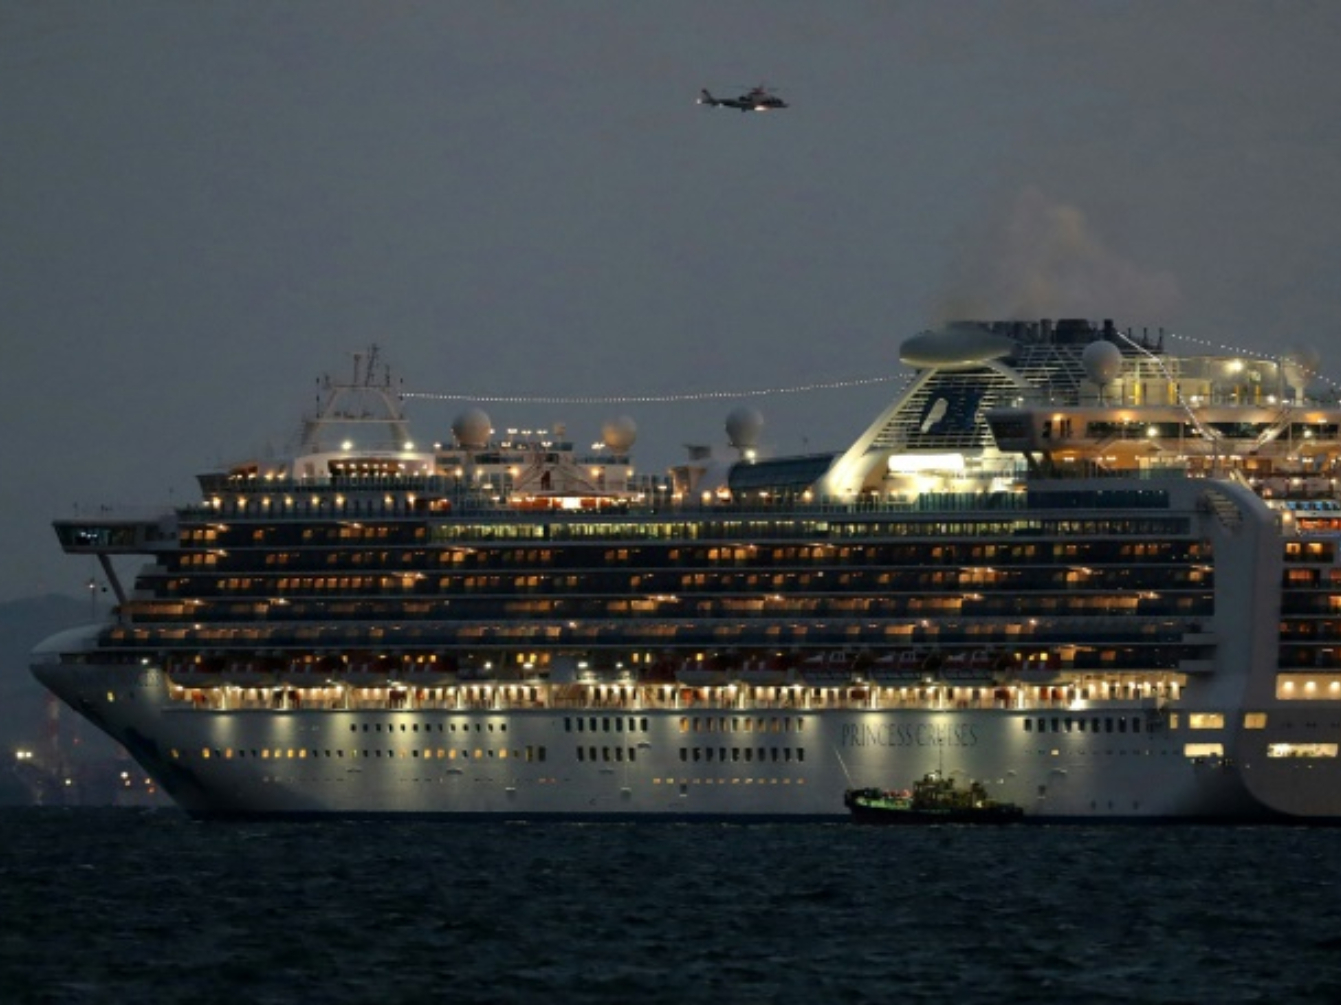 Coronavirus infects at least 10 on Japan cruise ship